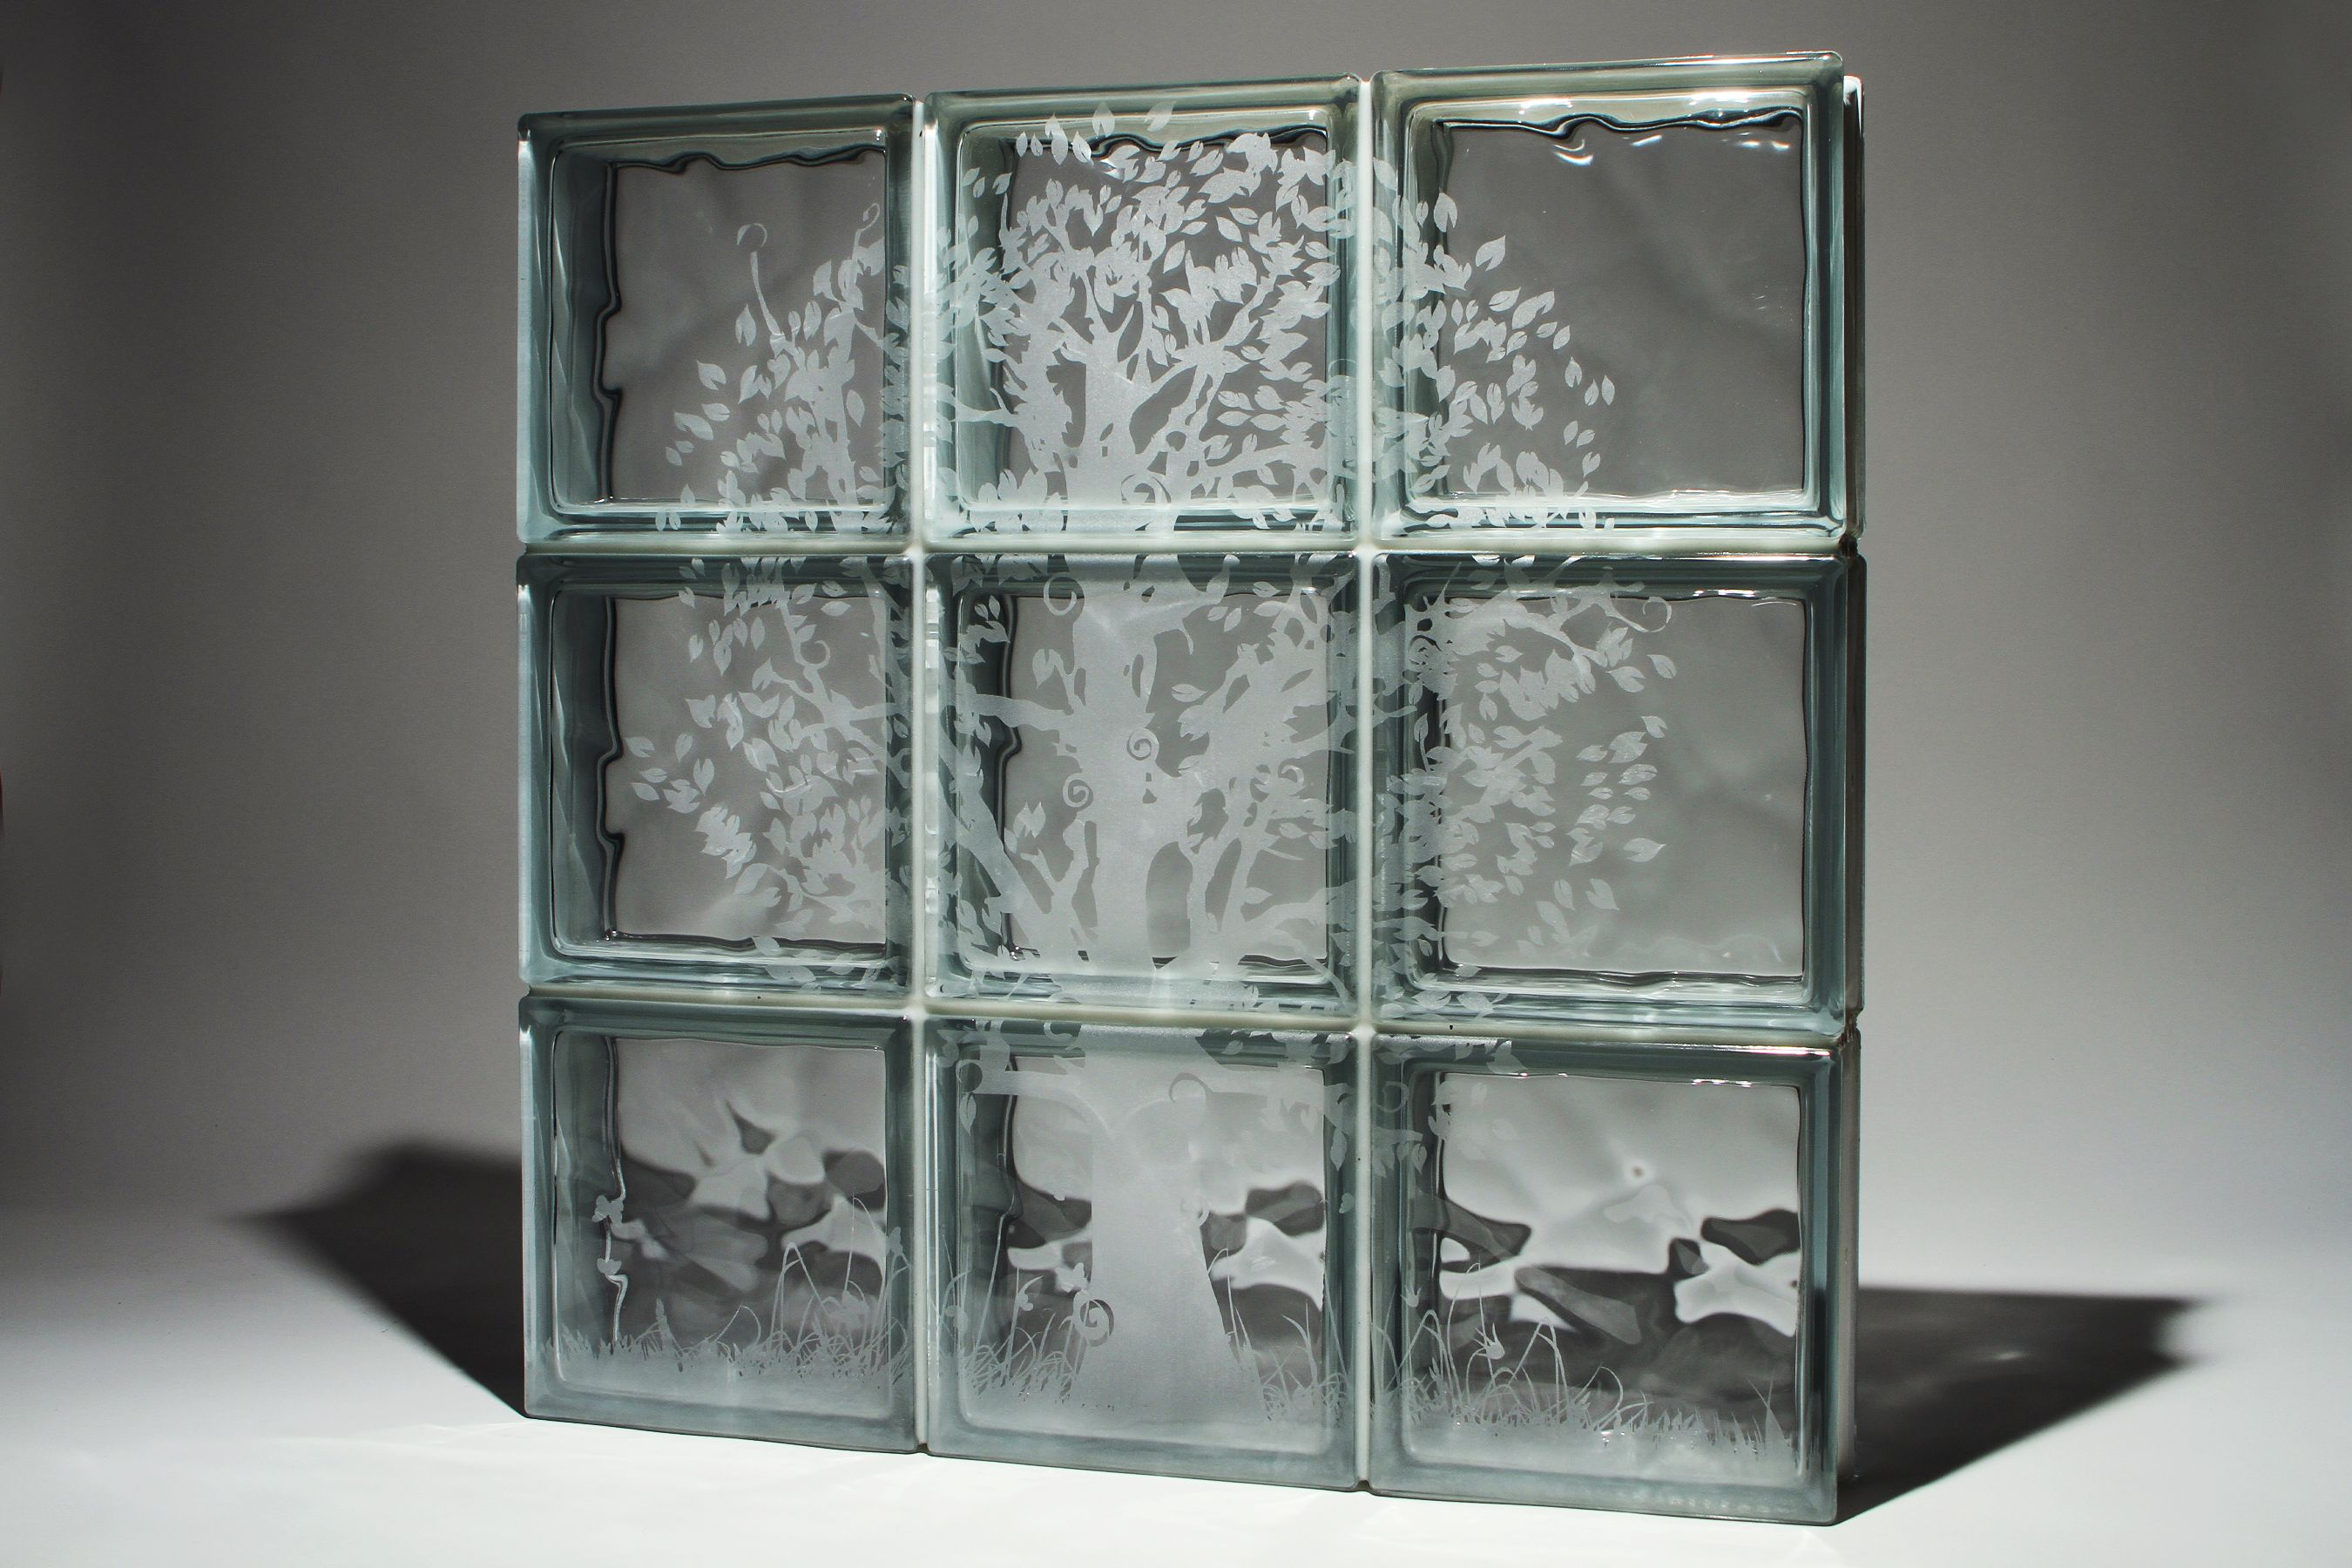 Glass Block With Tree Design - Add Style With Etched